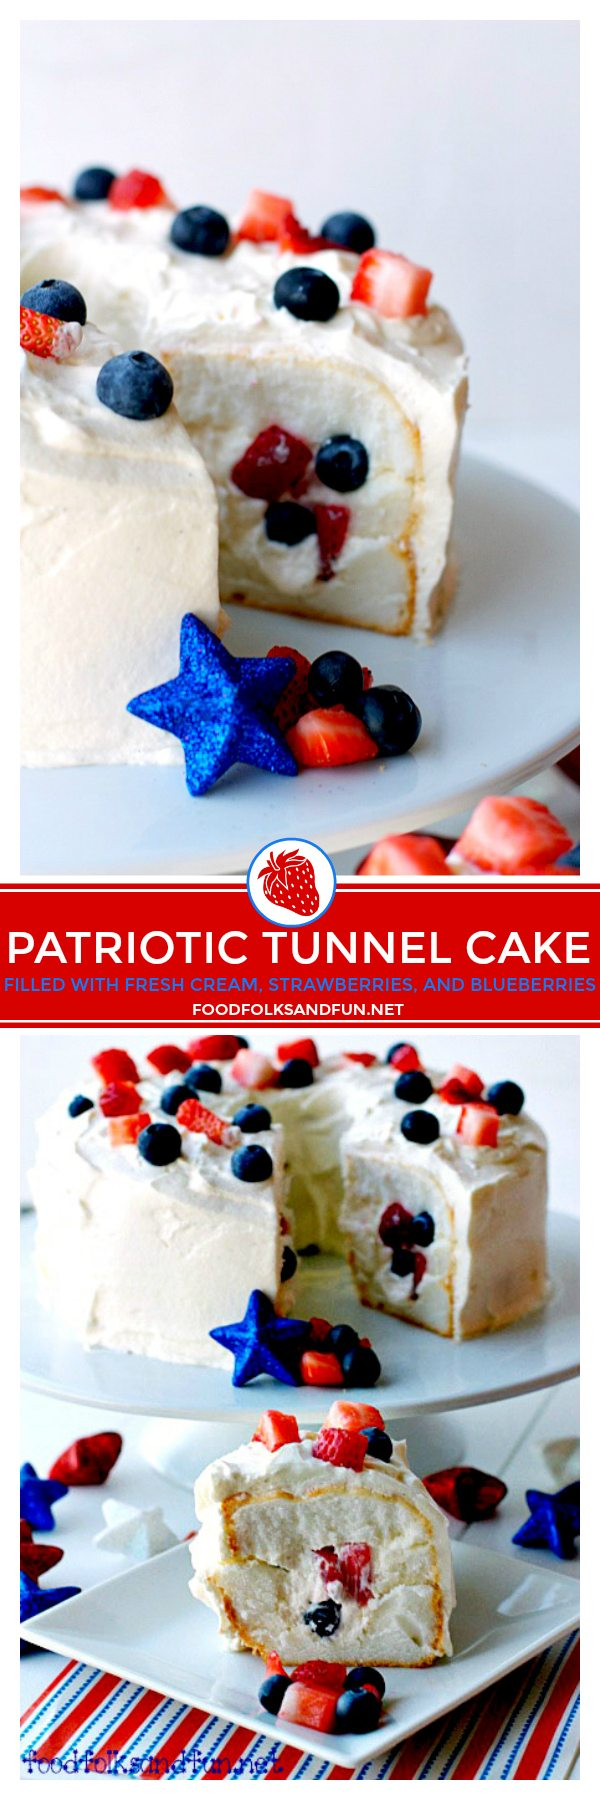 This Patriotic Tunnel Cake is a quick and easy dessert for Memorial Day, 4th of July, Labor Day, or anytime! It's filled with fresh whipped cream, strawberries, and blueberries! via @foodfolksandfun